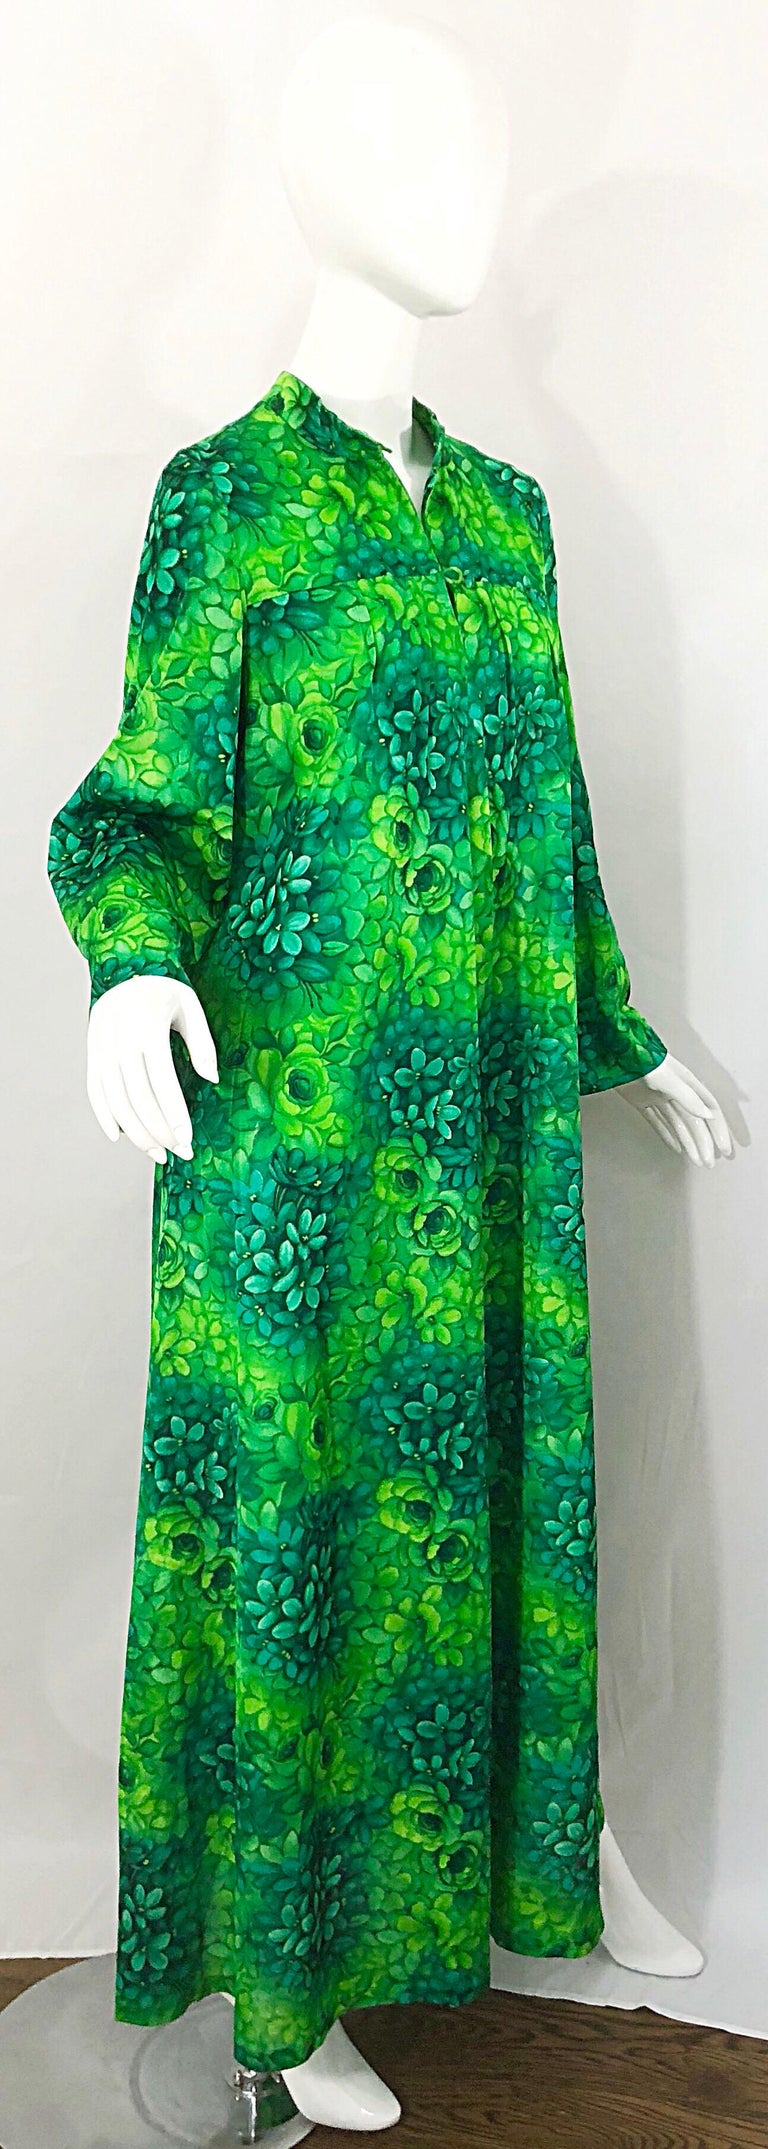 Amazing 1970s Neon + Kelly Green Abstract Flower Print 70s Vintage Caftan Dress For Sale 6